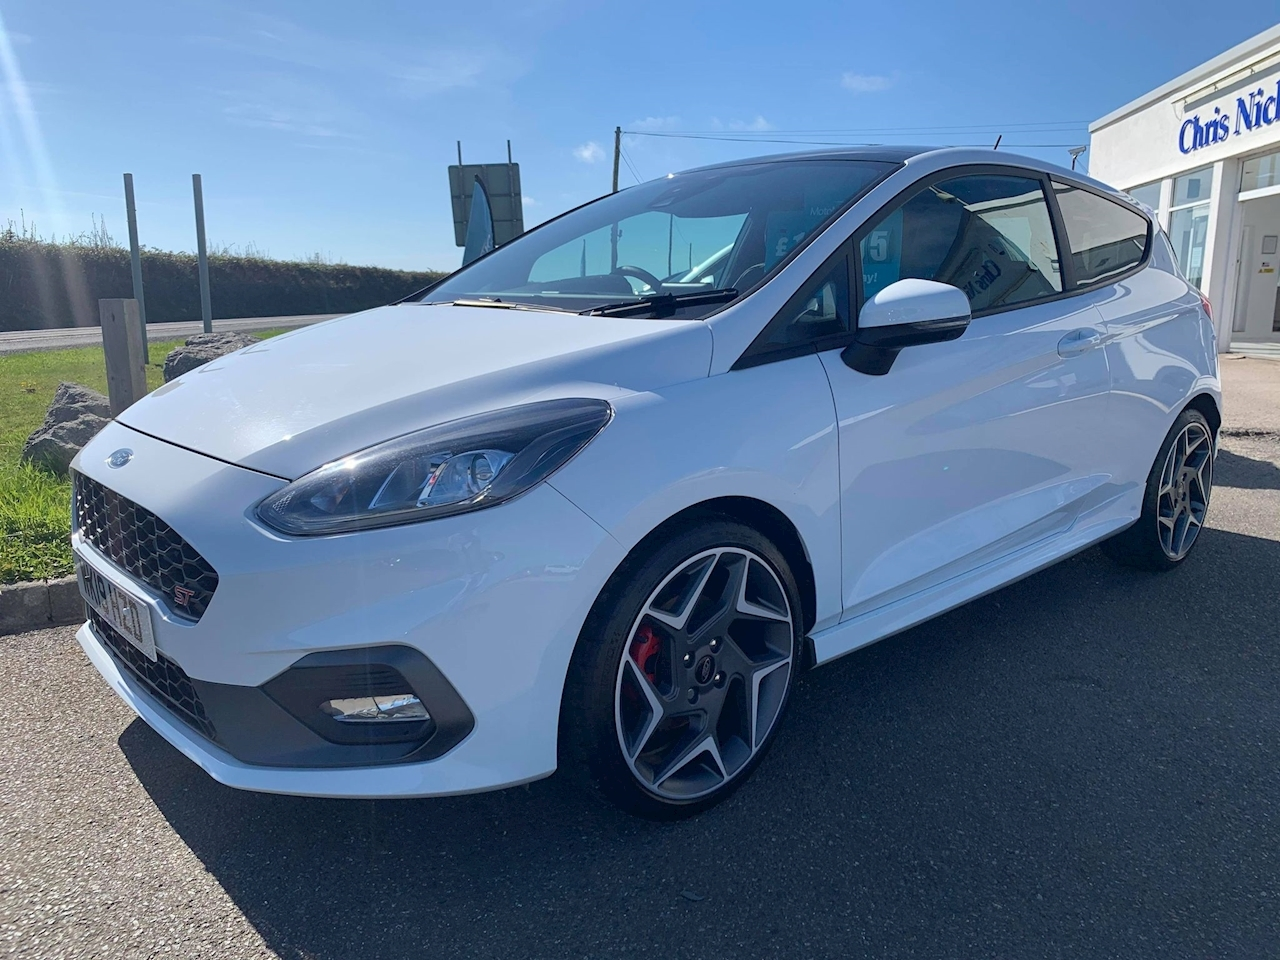 Ford Fiesta ST-3 Hatchback 1.5 Manual Petrol